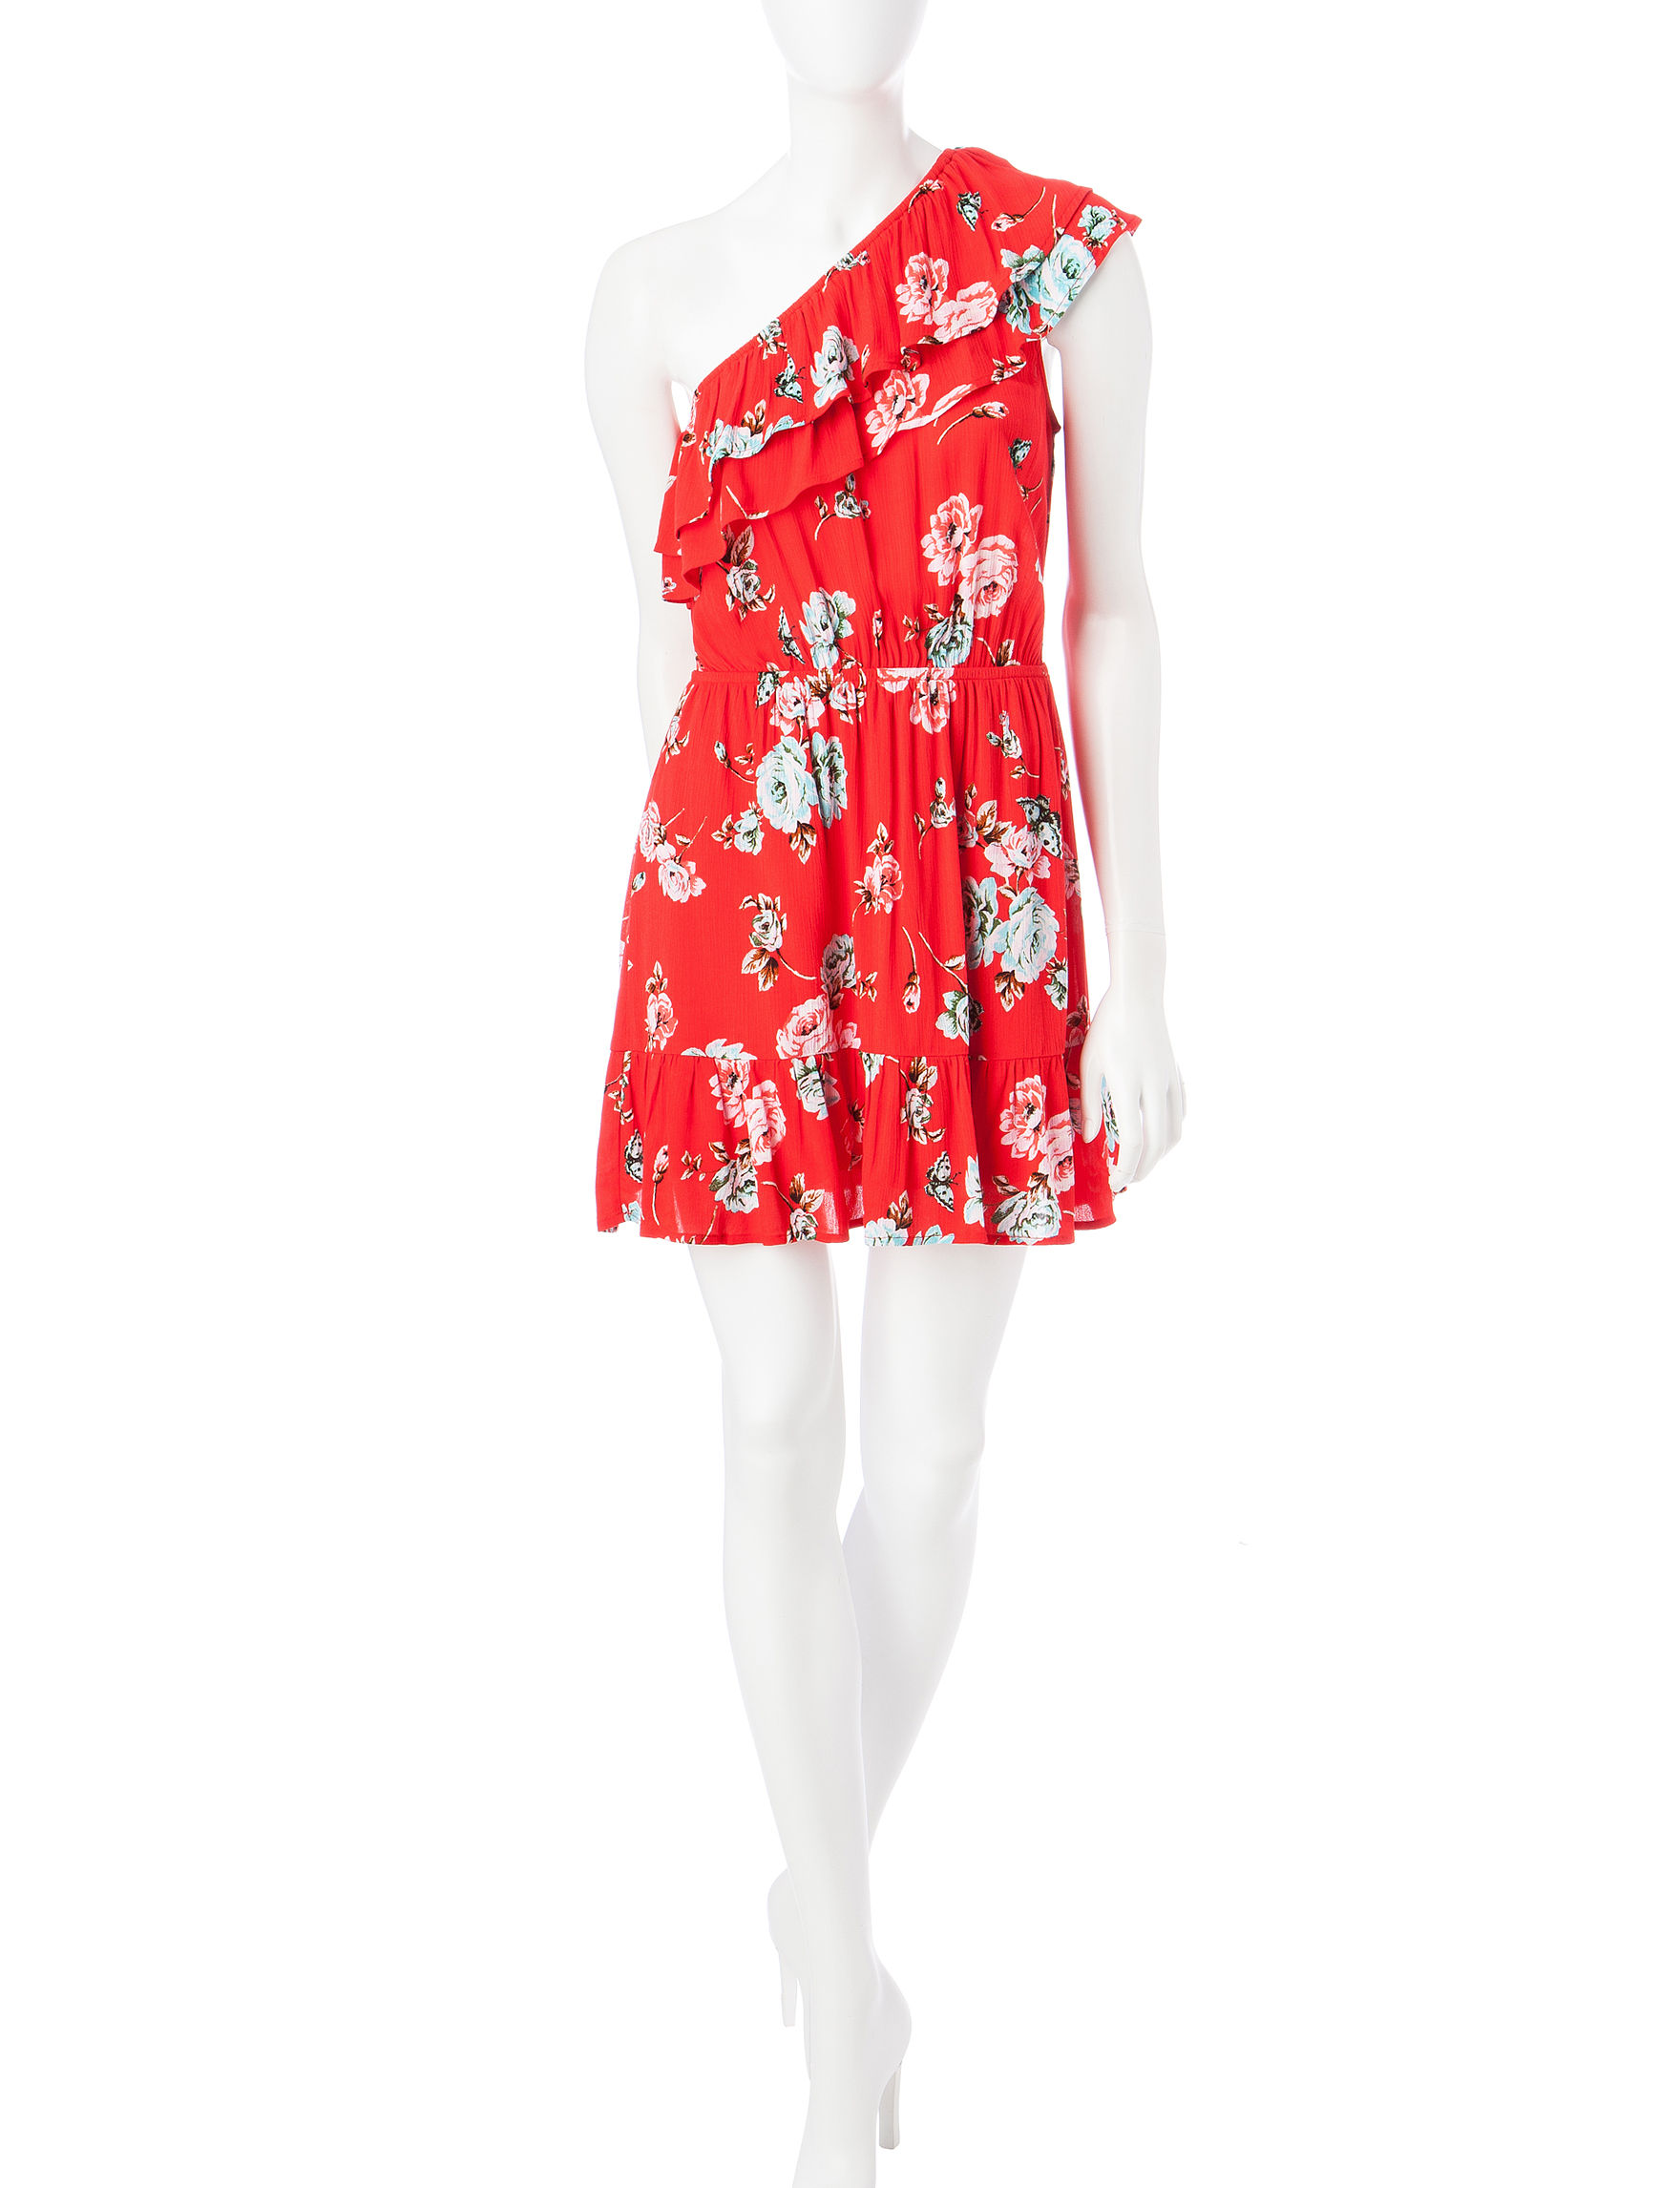 Love Fire Red Floral Everyday & Casual Shift Dresses Sundresses